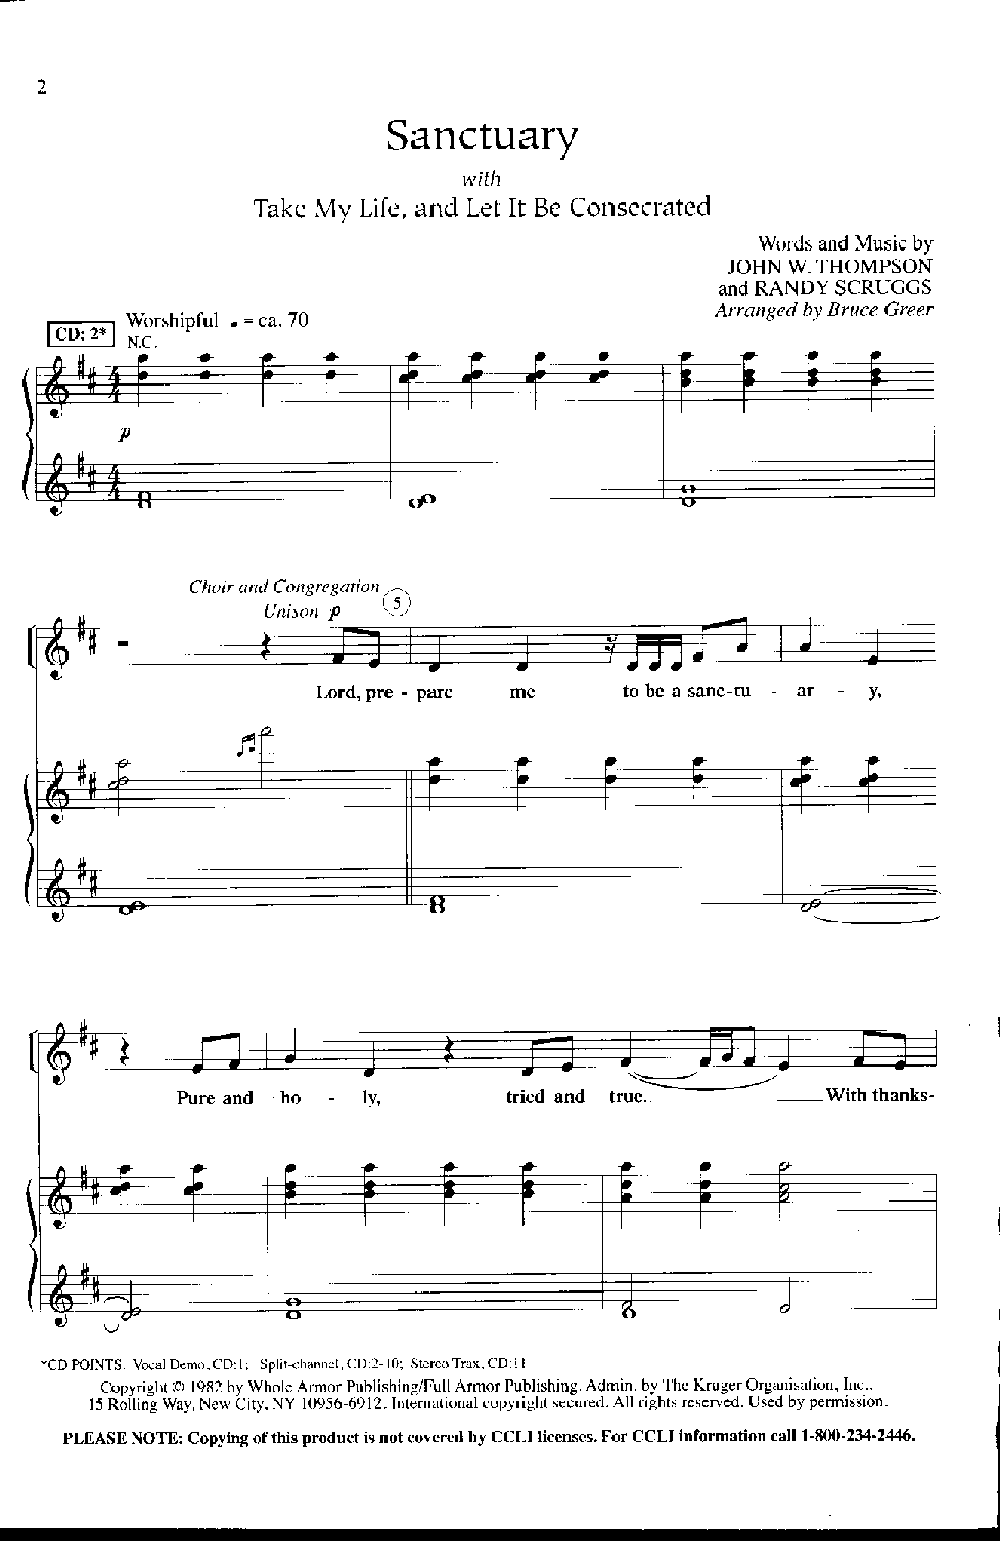 picture about Let It Be Piano Sheet Music Free Printable referred to as Sanctuary with Get My Everyday living and Enable It Be Consecr J.W.